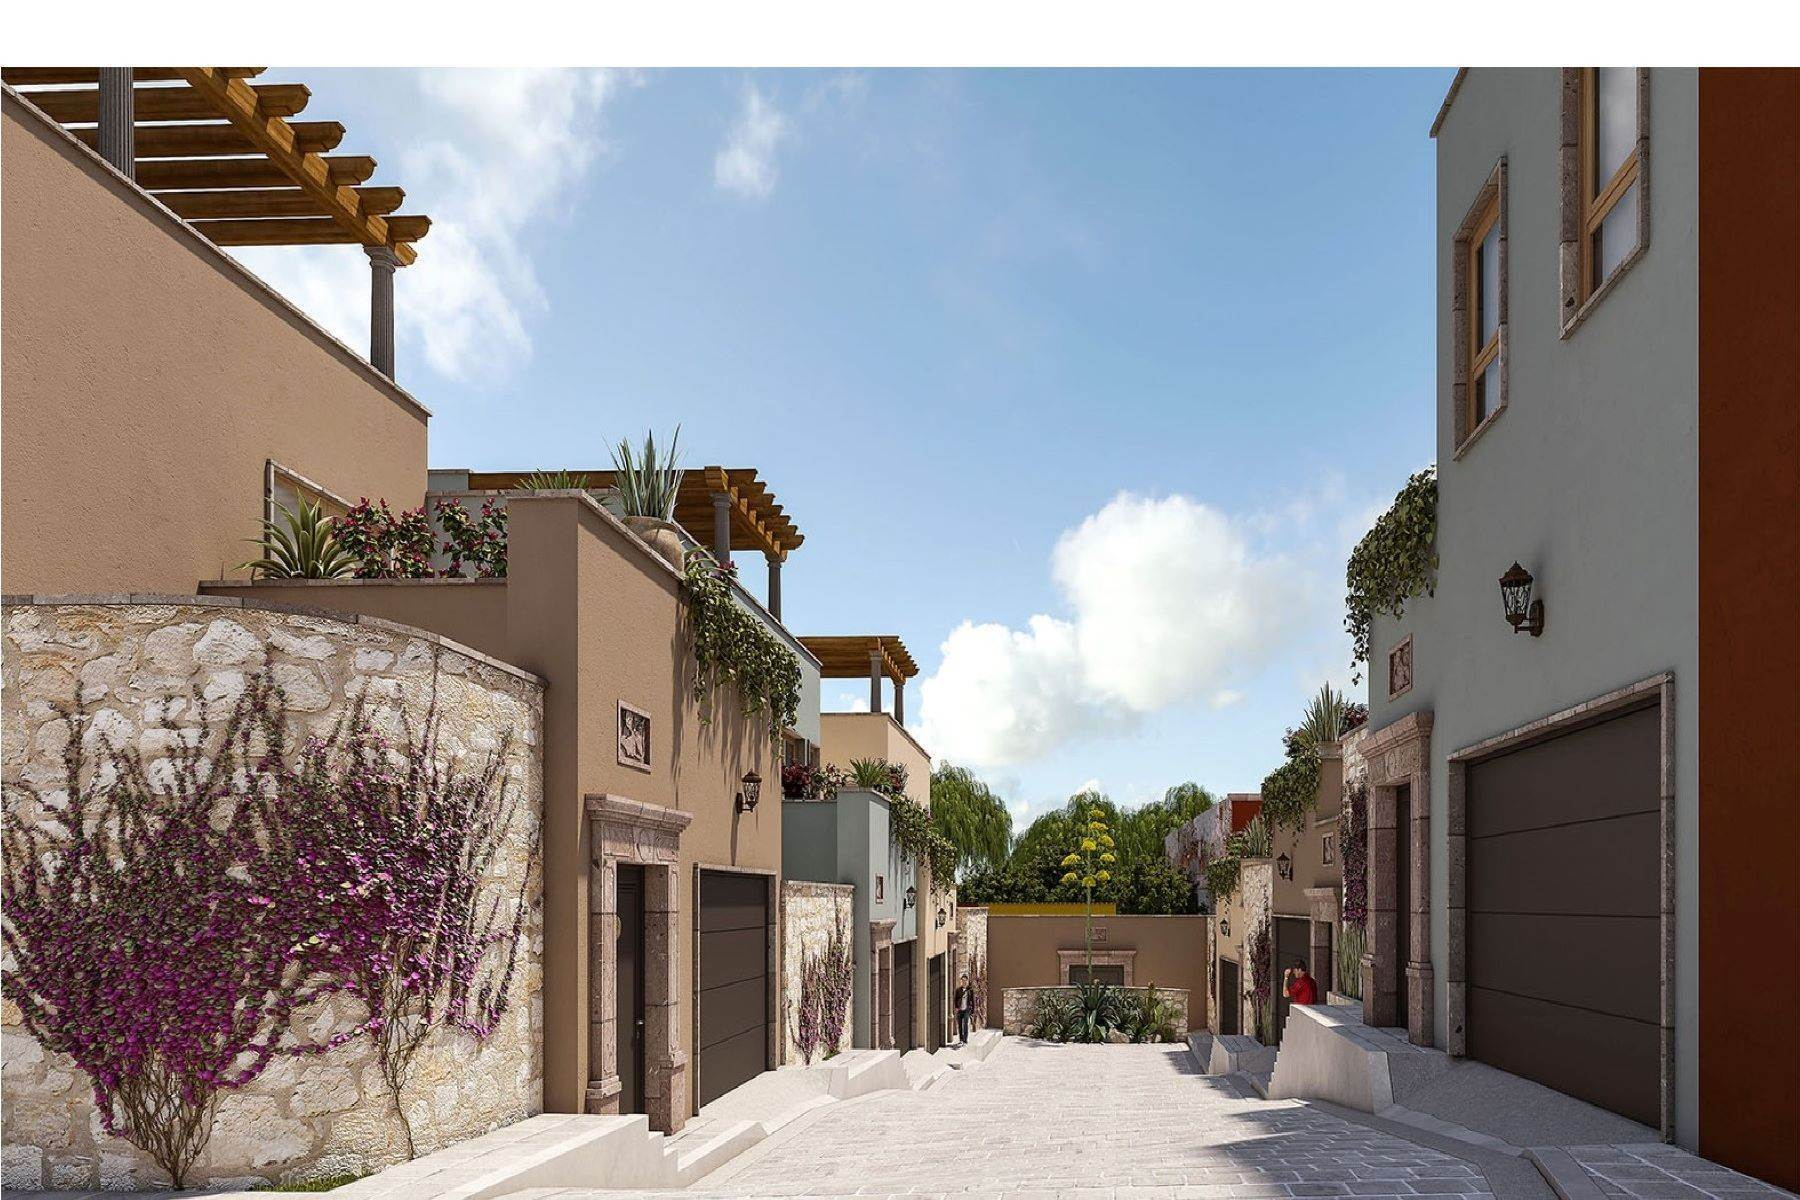 Single Family Homes for Sale at Quiote I Cerrada de Grillo San Miguel De Allende, Guanajuato 37770 Mexico